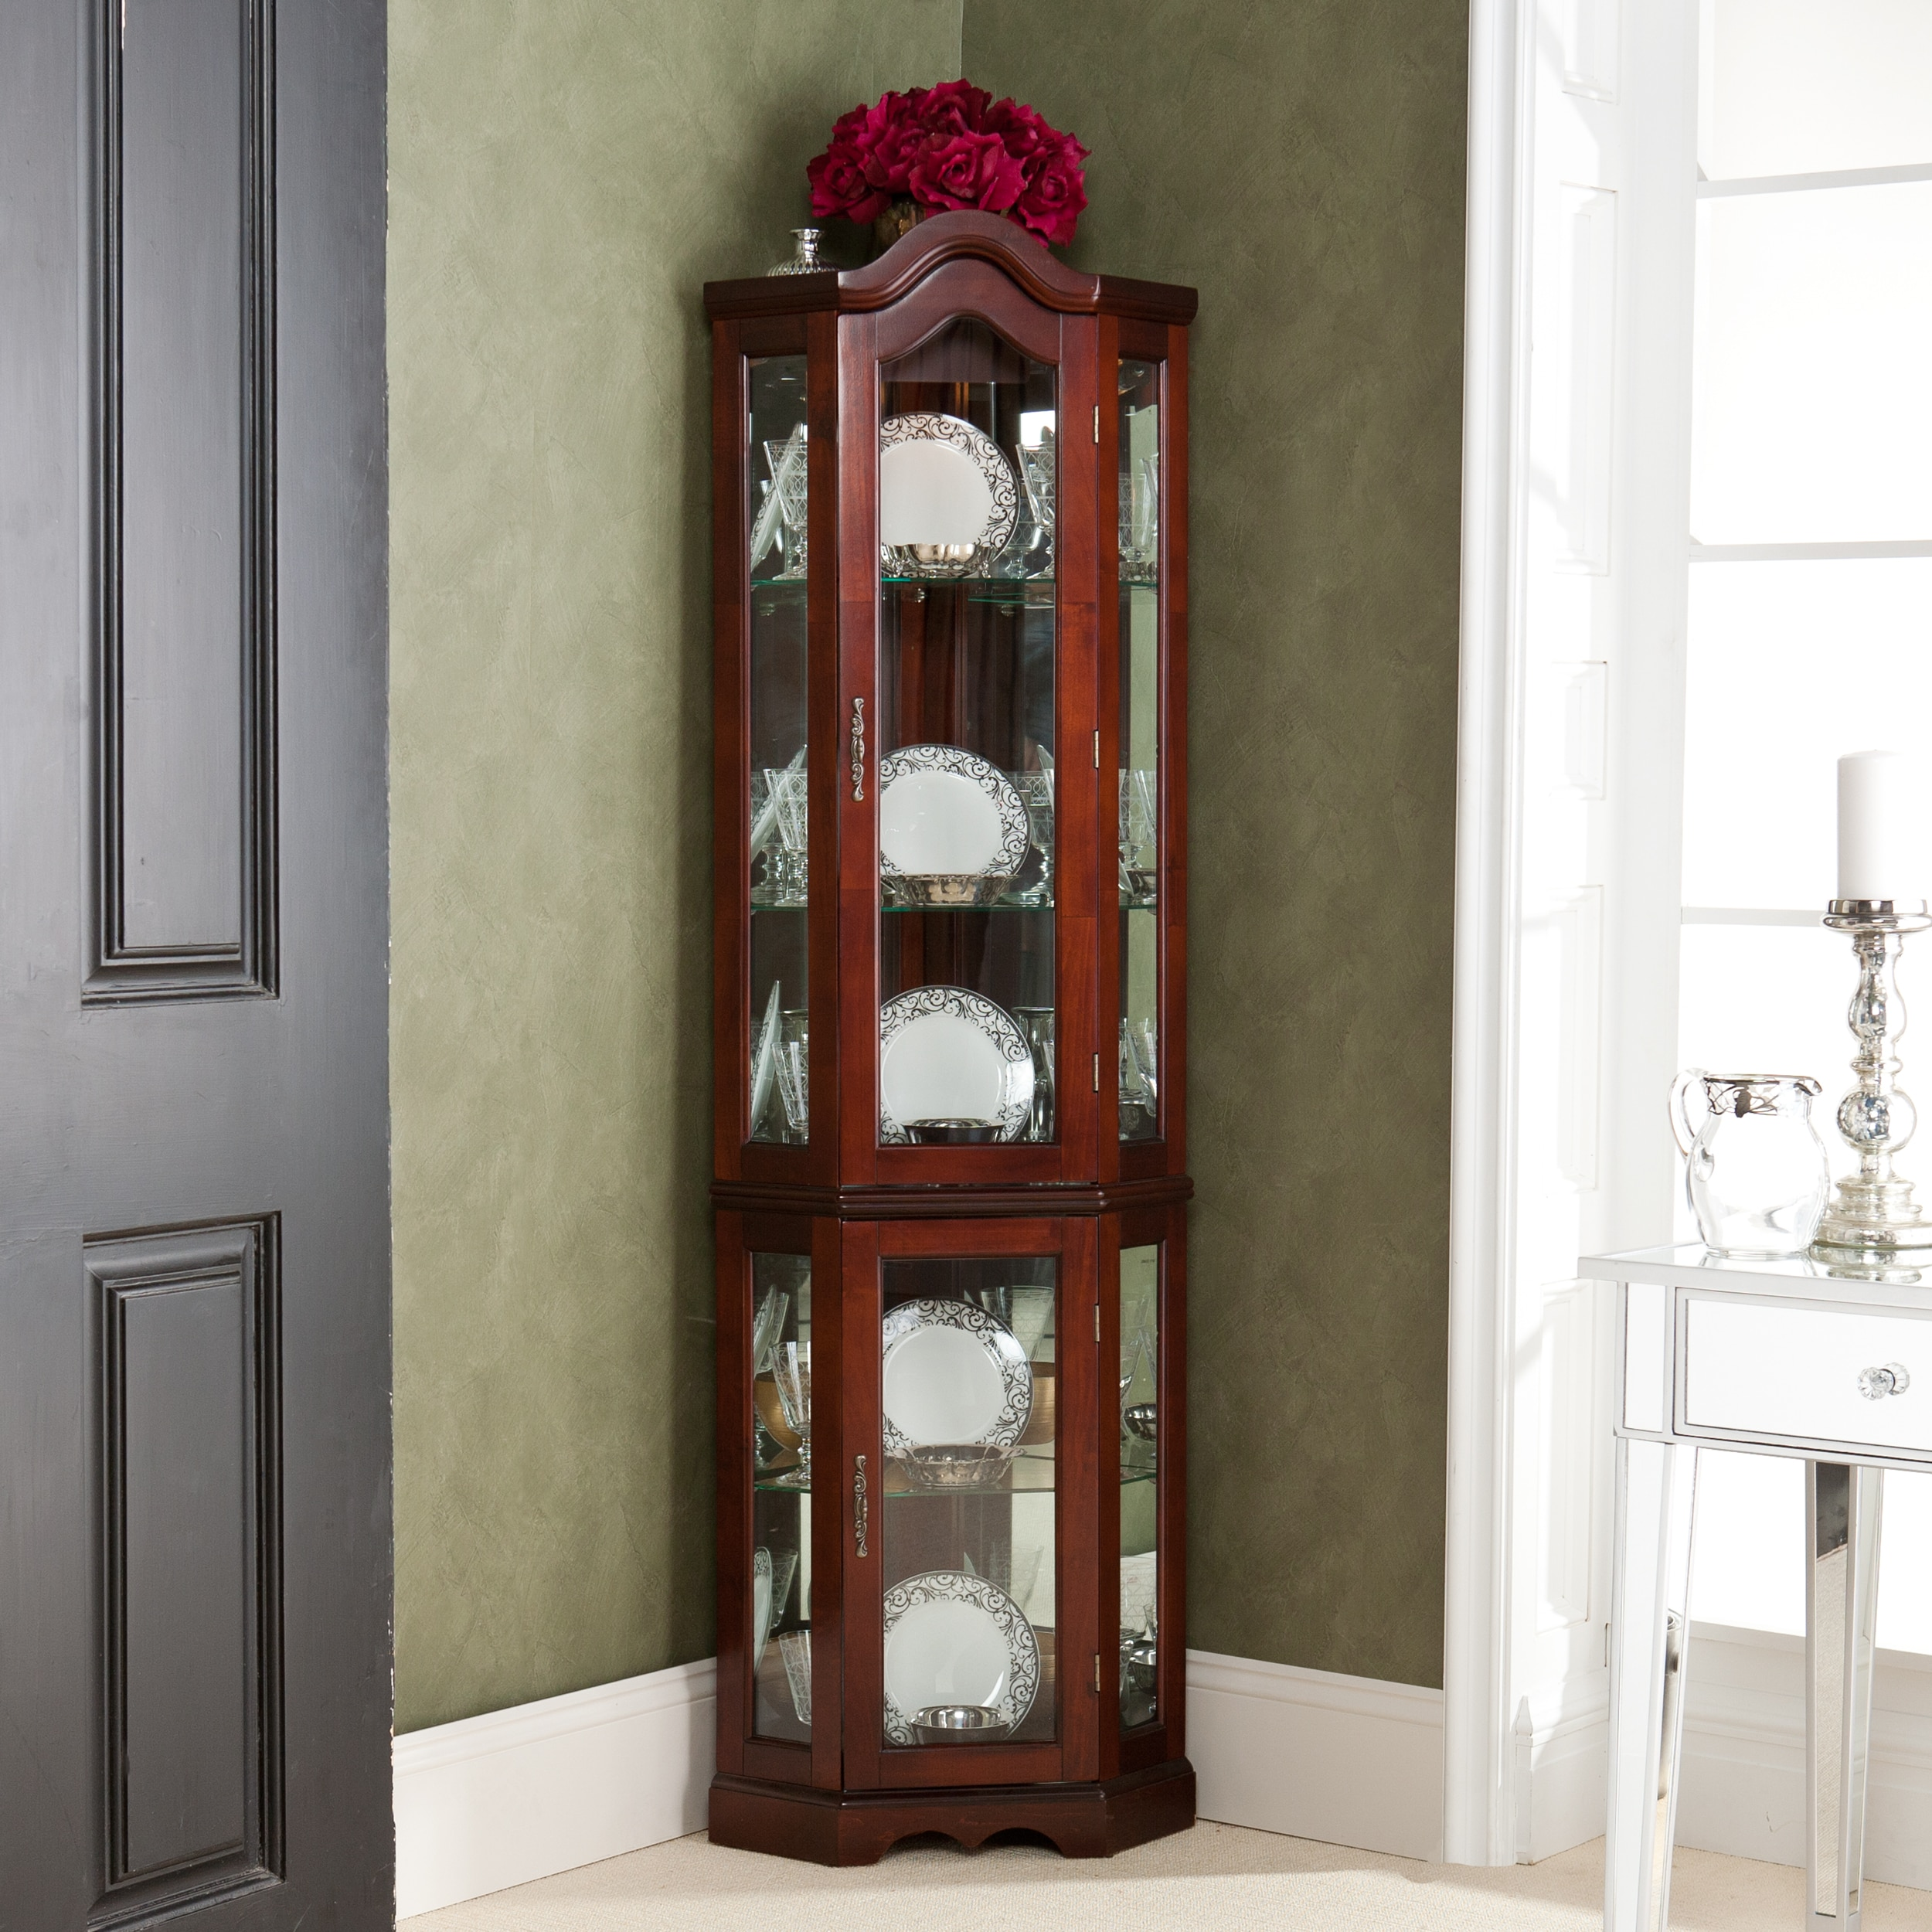 Genial Shop Harper Blvd McCoy Mahogany Lighted Display Cabinet   Free Shipping  Today   Overstock.com   2105608